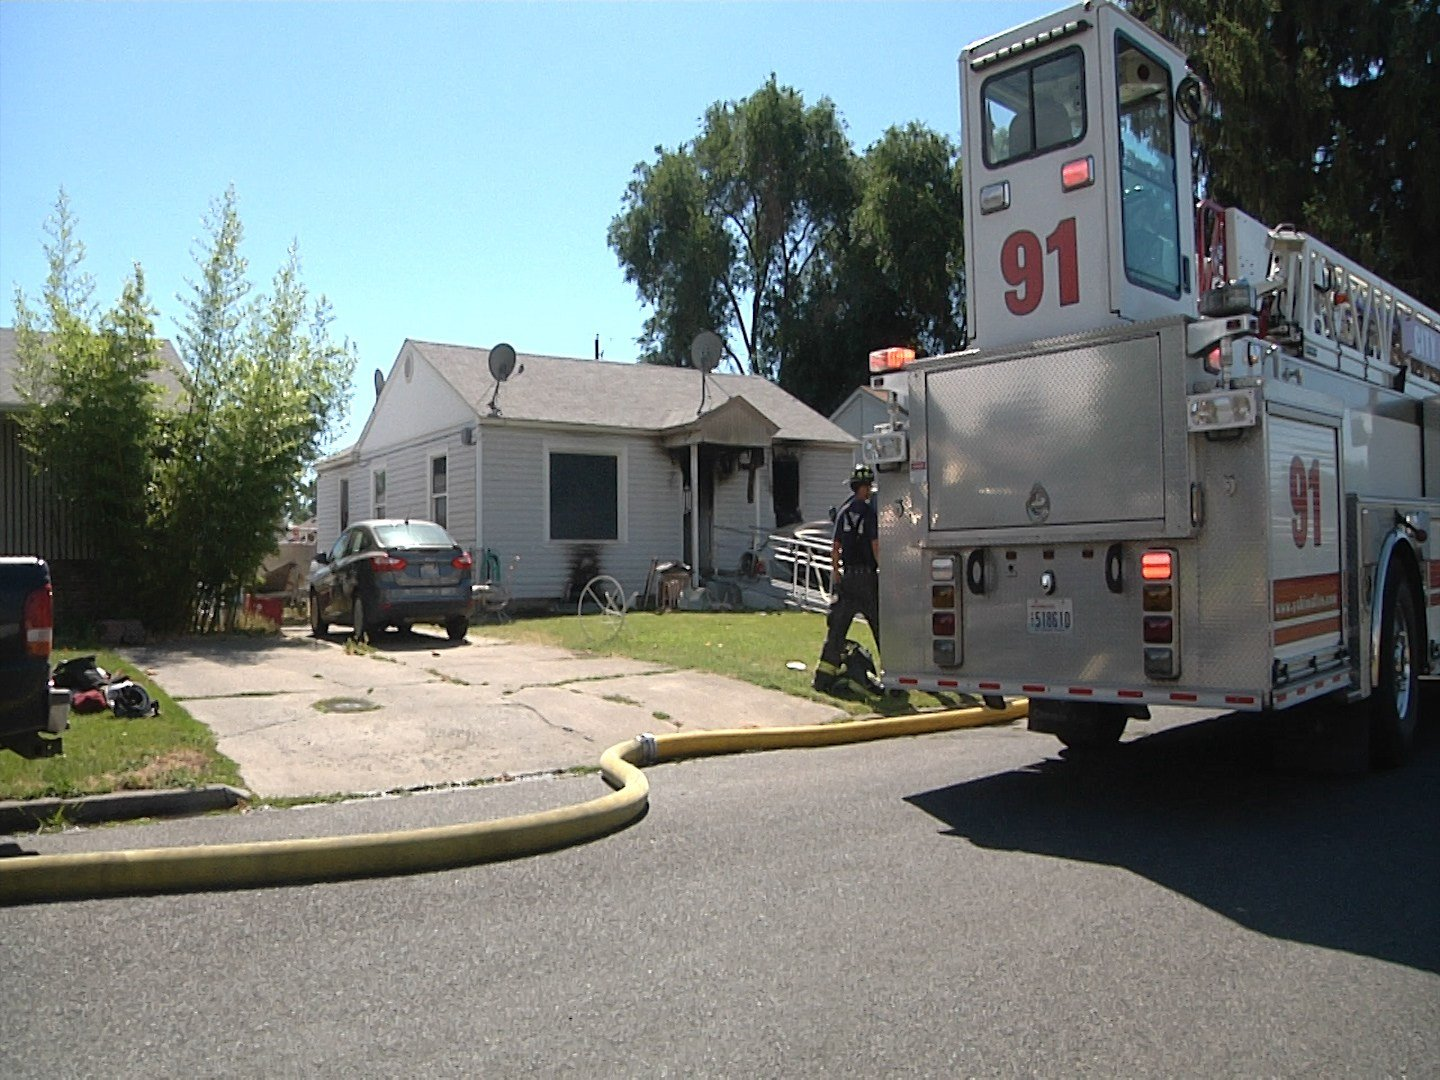 This is the second time this house has caught on fire in the past two years.